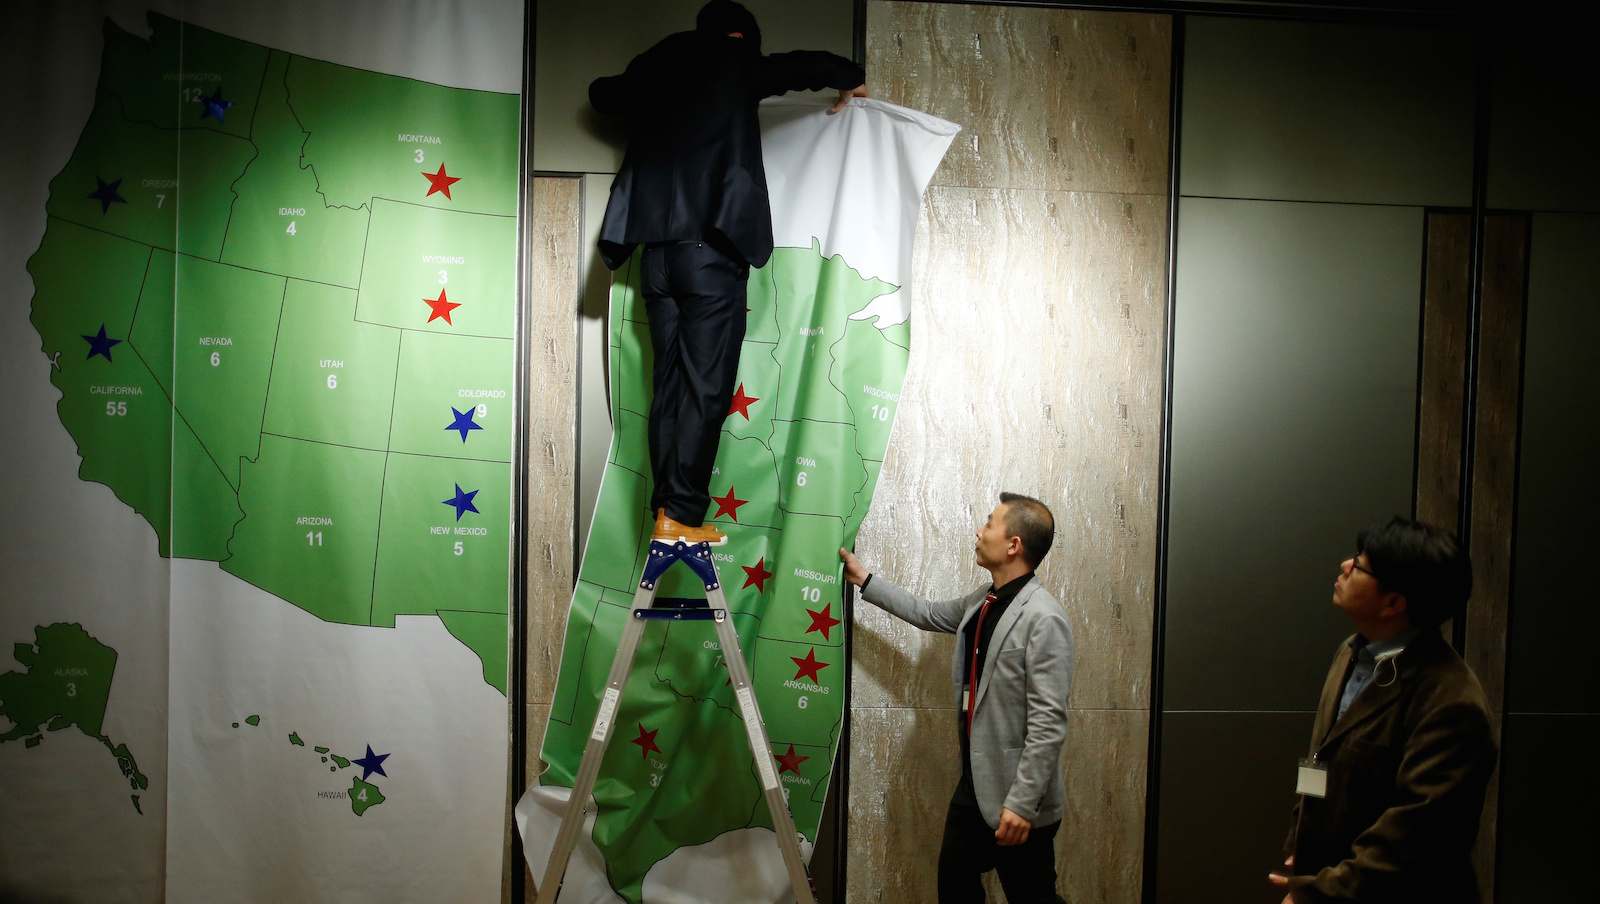 A man removes the Electoral College Map after a U.S. Election Watch event hosted by the U.S. Embassy at a hotel in Seoul, South Korea, November 9, 2016. REUTERS/Kim Hong-Ji - RTX2SOUR